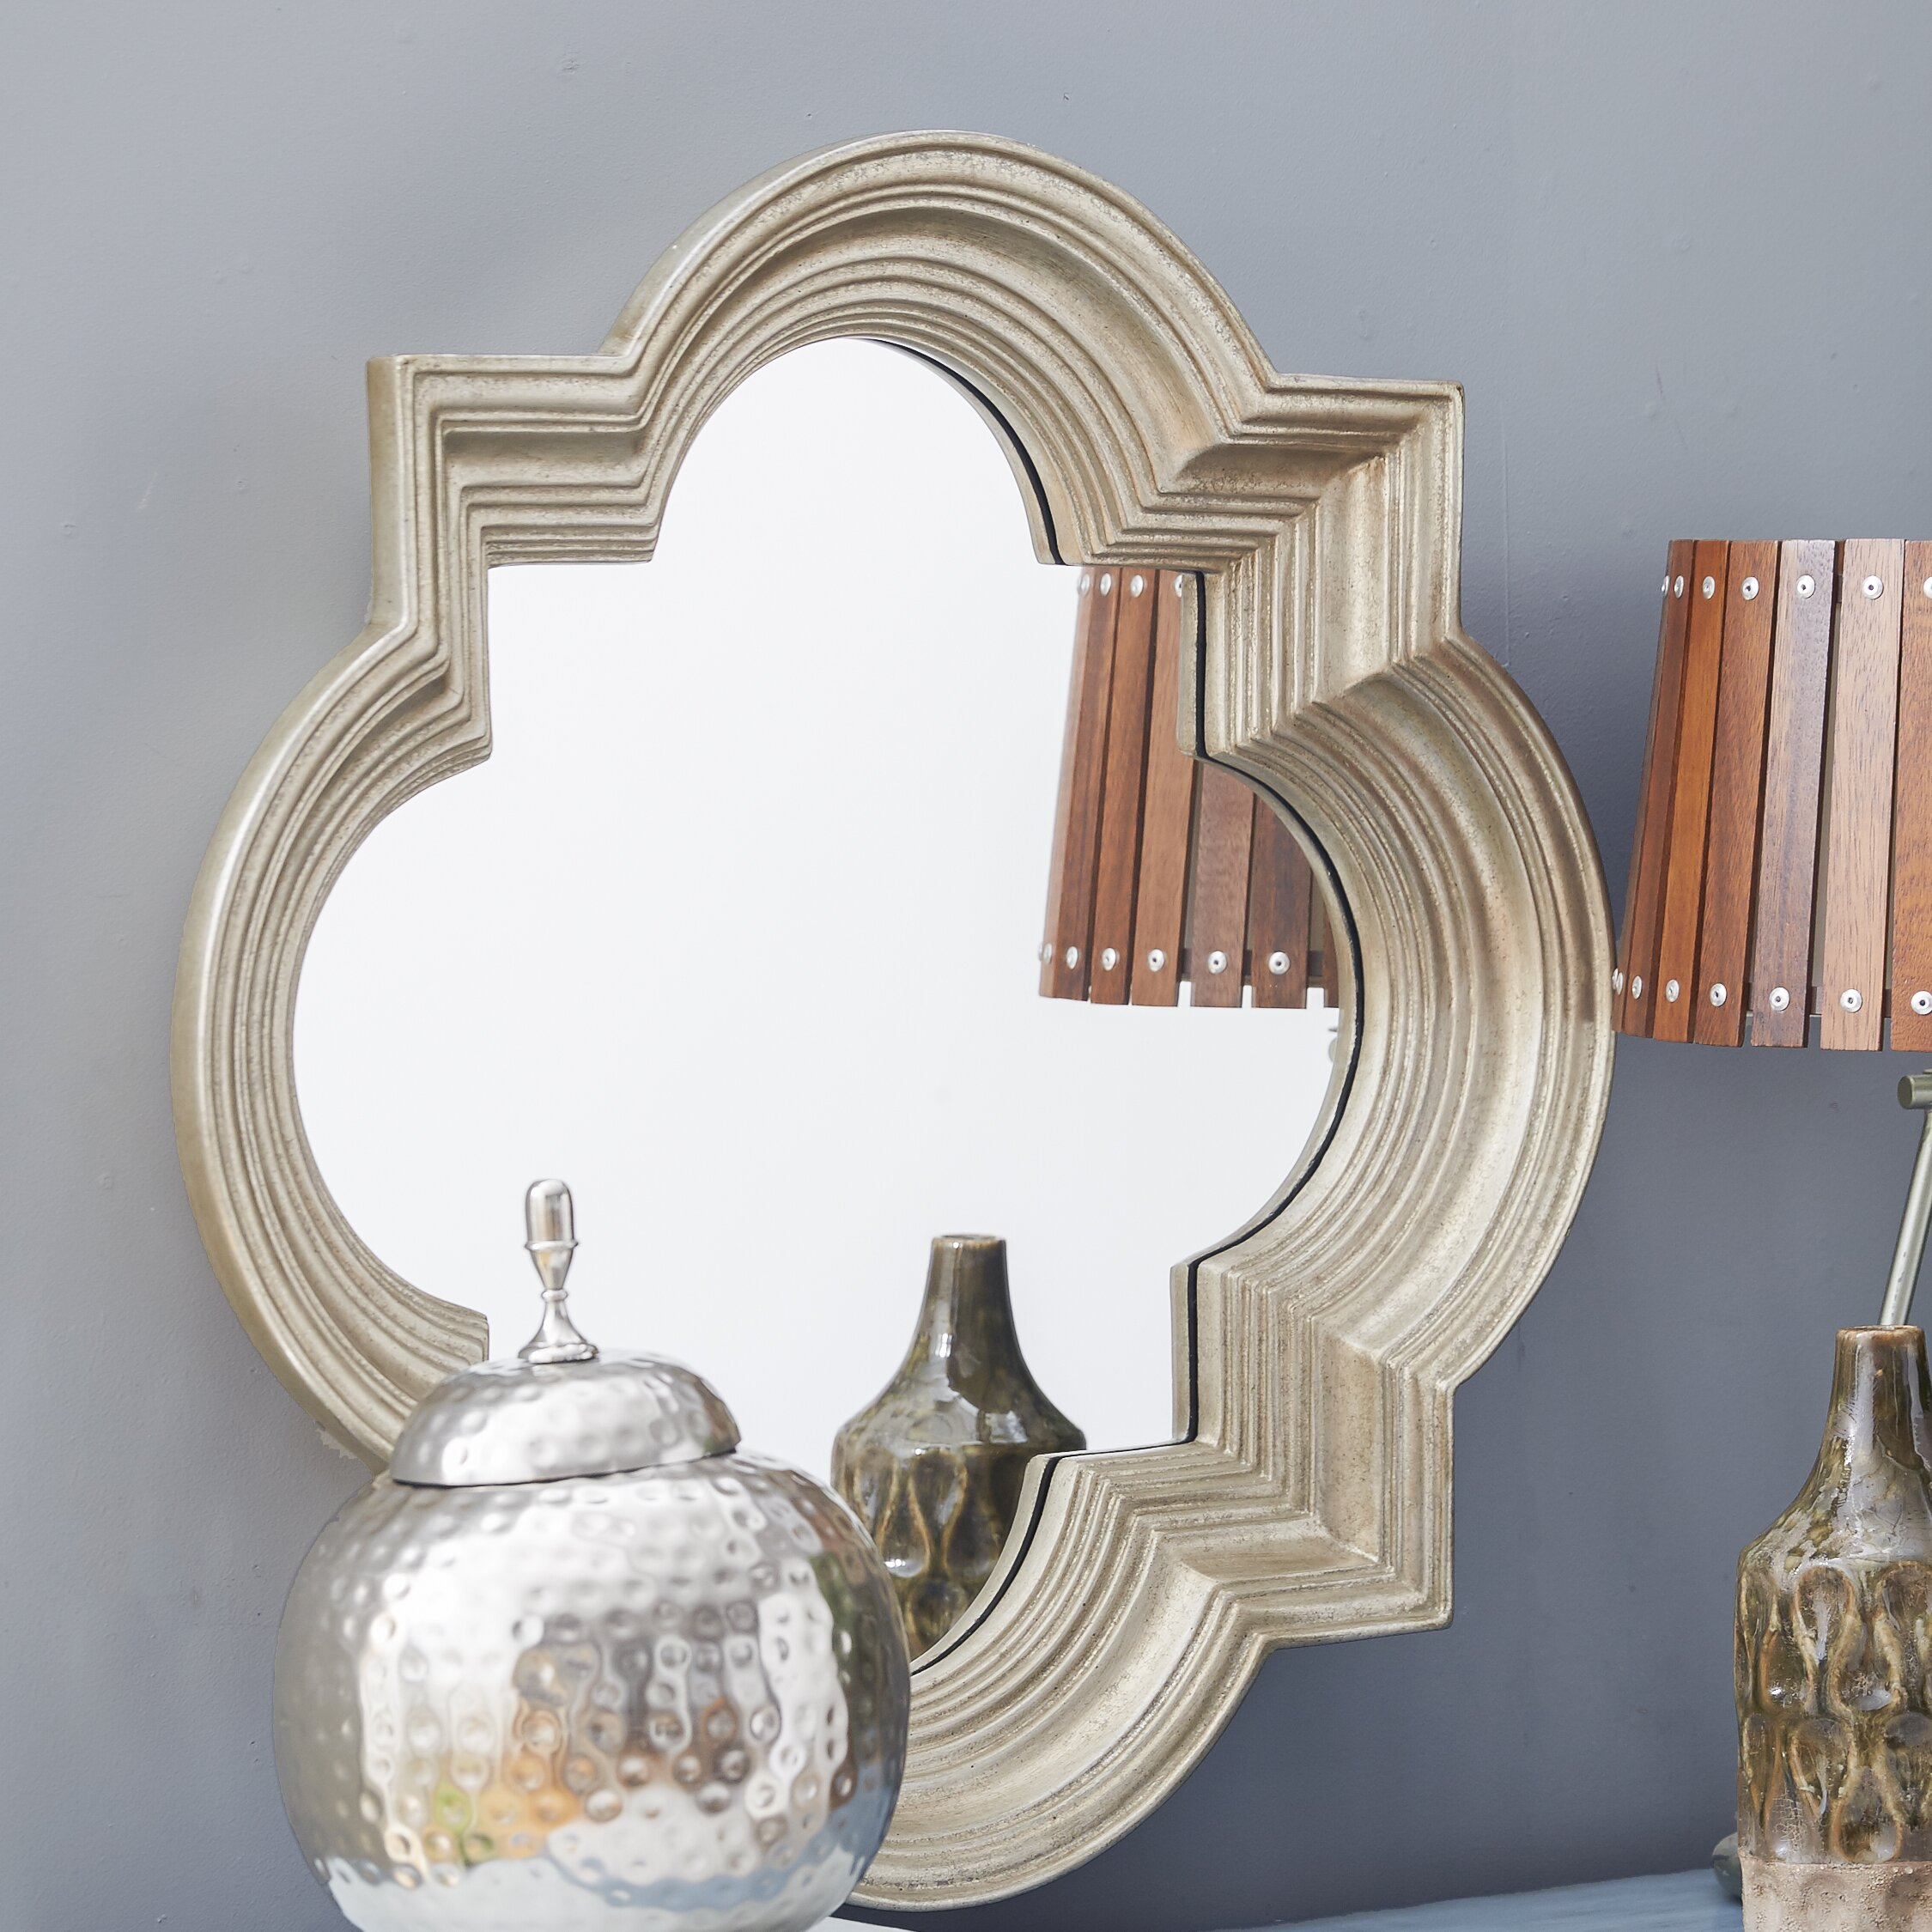 Osp designs gatsby decorative beveled wall mirror for Decor mirror